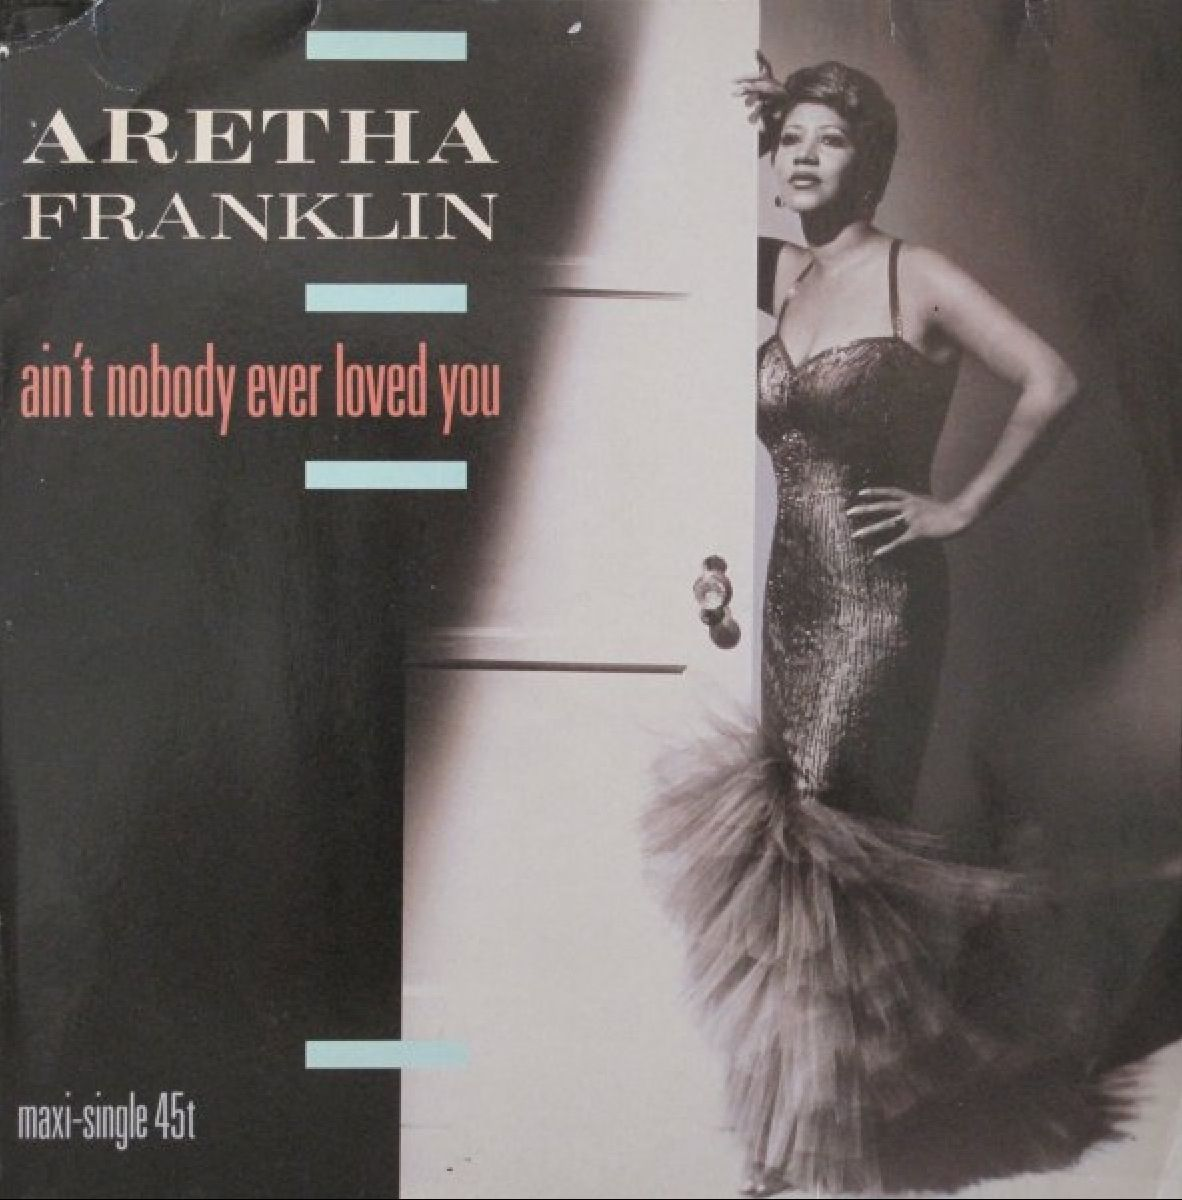 Aretha Franklin S Cover For Her Tune Ain T Nobody Ever Loved You